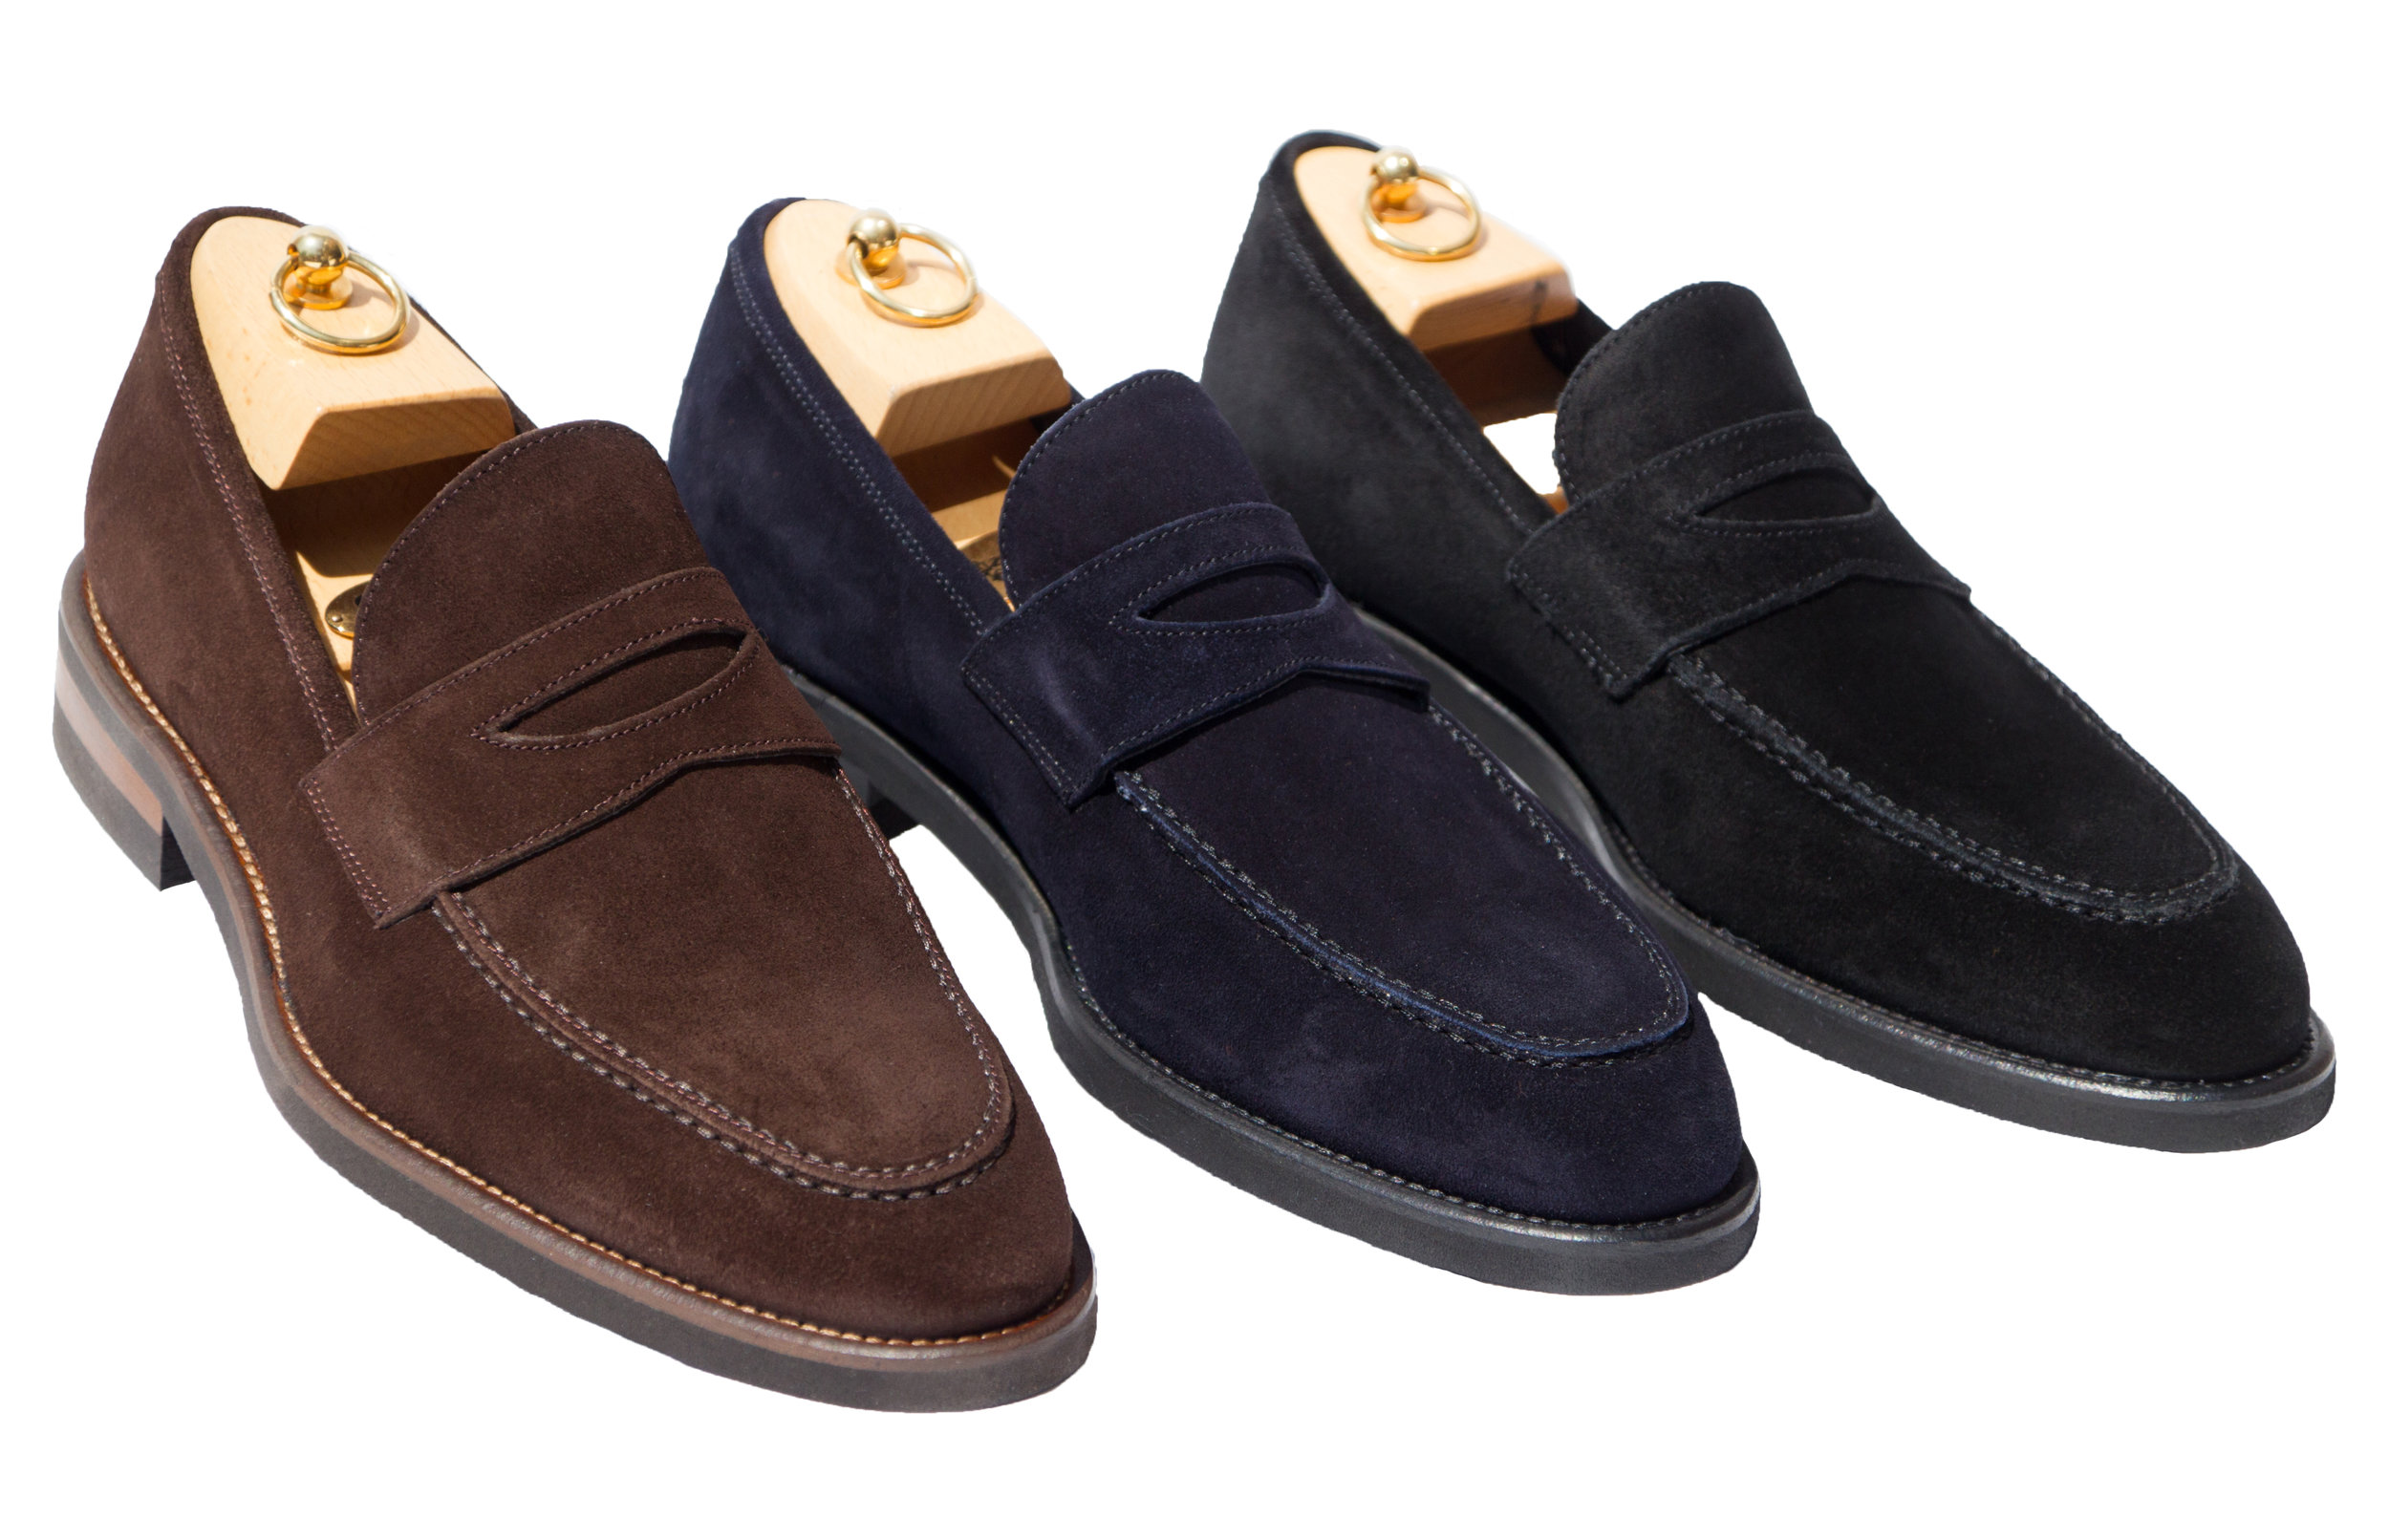 Style # H748: Chocolate Brown, Navy Blue, Black  Velour Suede Slip-On Loafer featuring a light weight Vibram rubber sole  Sizes available: 8 to 15 US, including half sizes